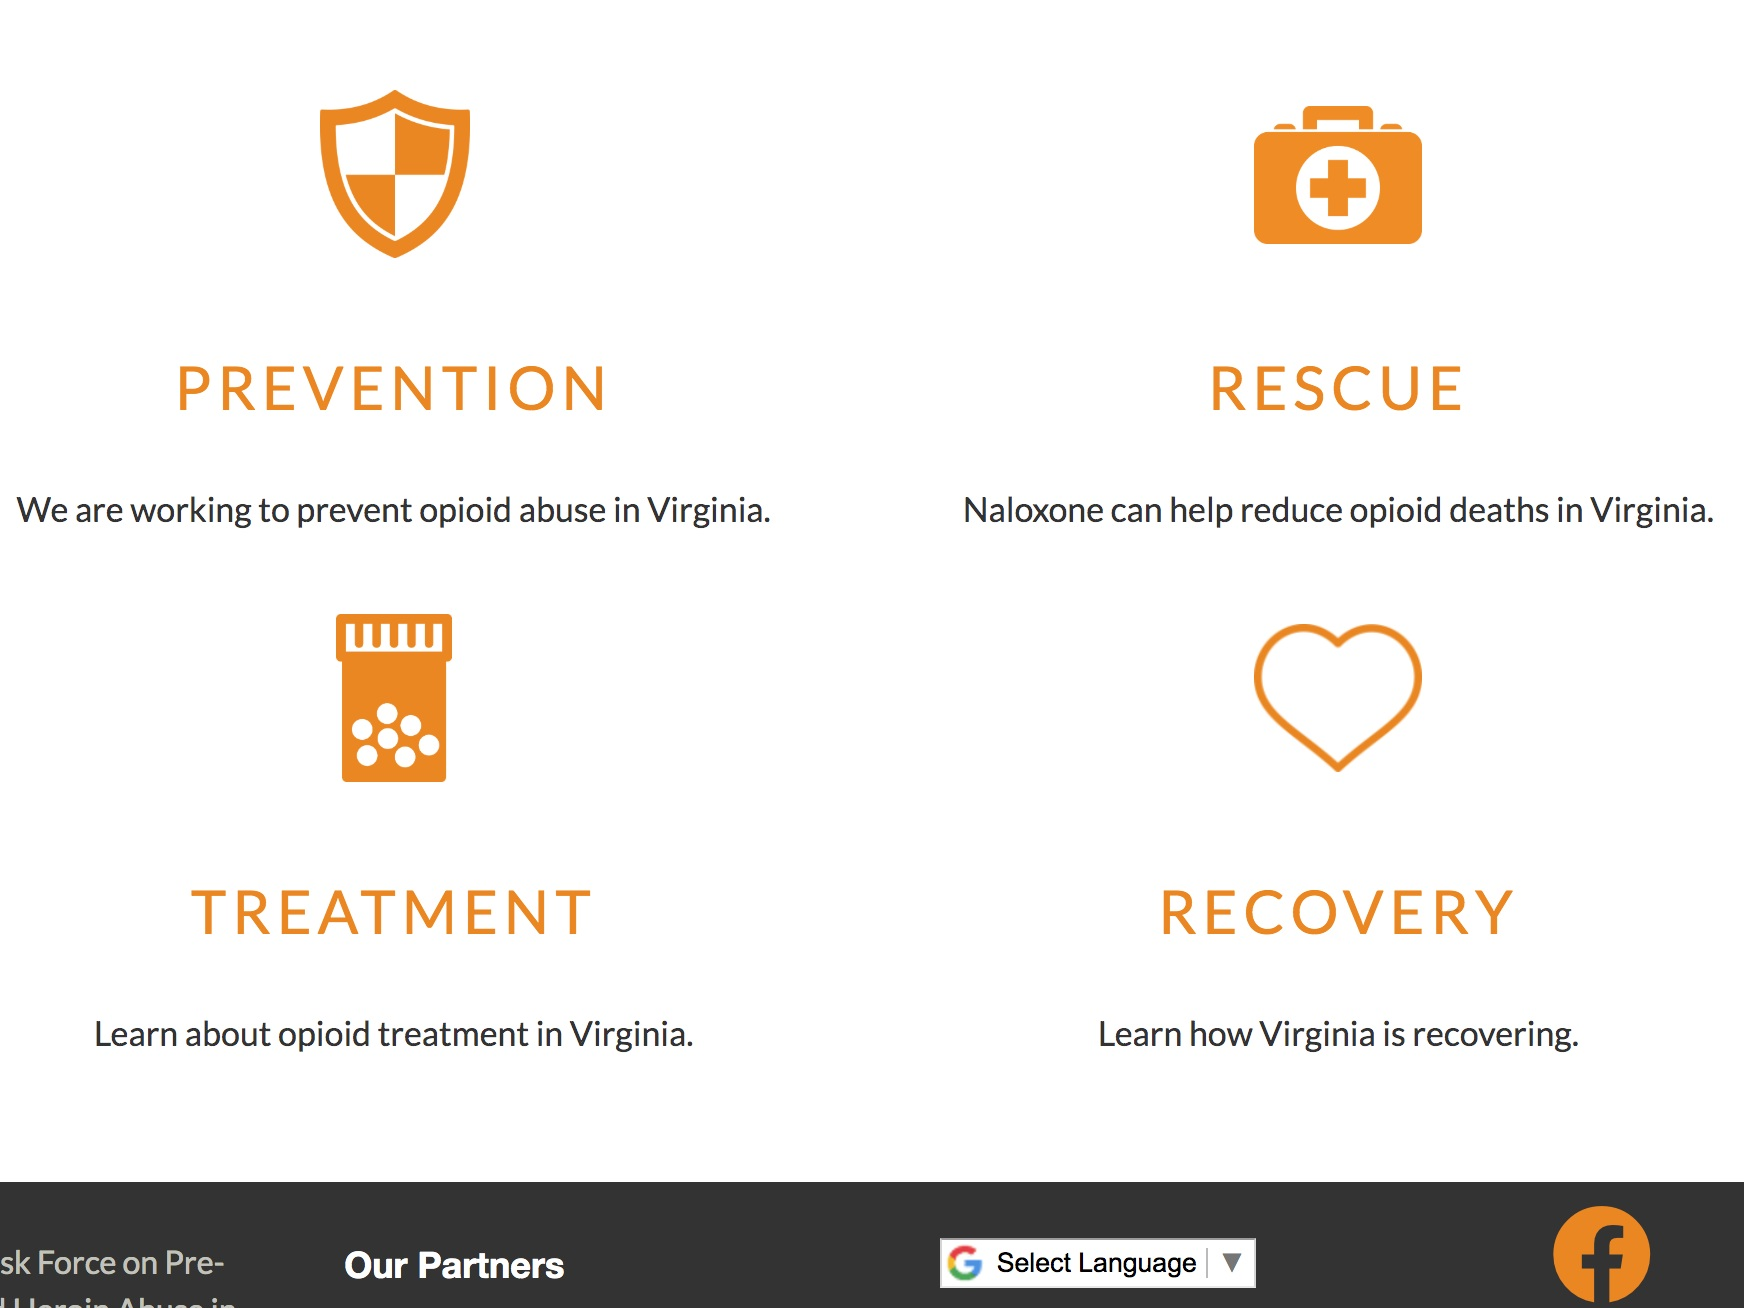 curb the crisis - CurbTheCrisis.org is a website intended as a comprehensive resource for all Virginians in the fight against opioid misuse and overdose. The website has a helpful treatment resource locator and tips for how to access drug treatment.